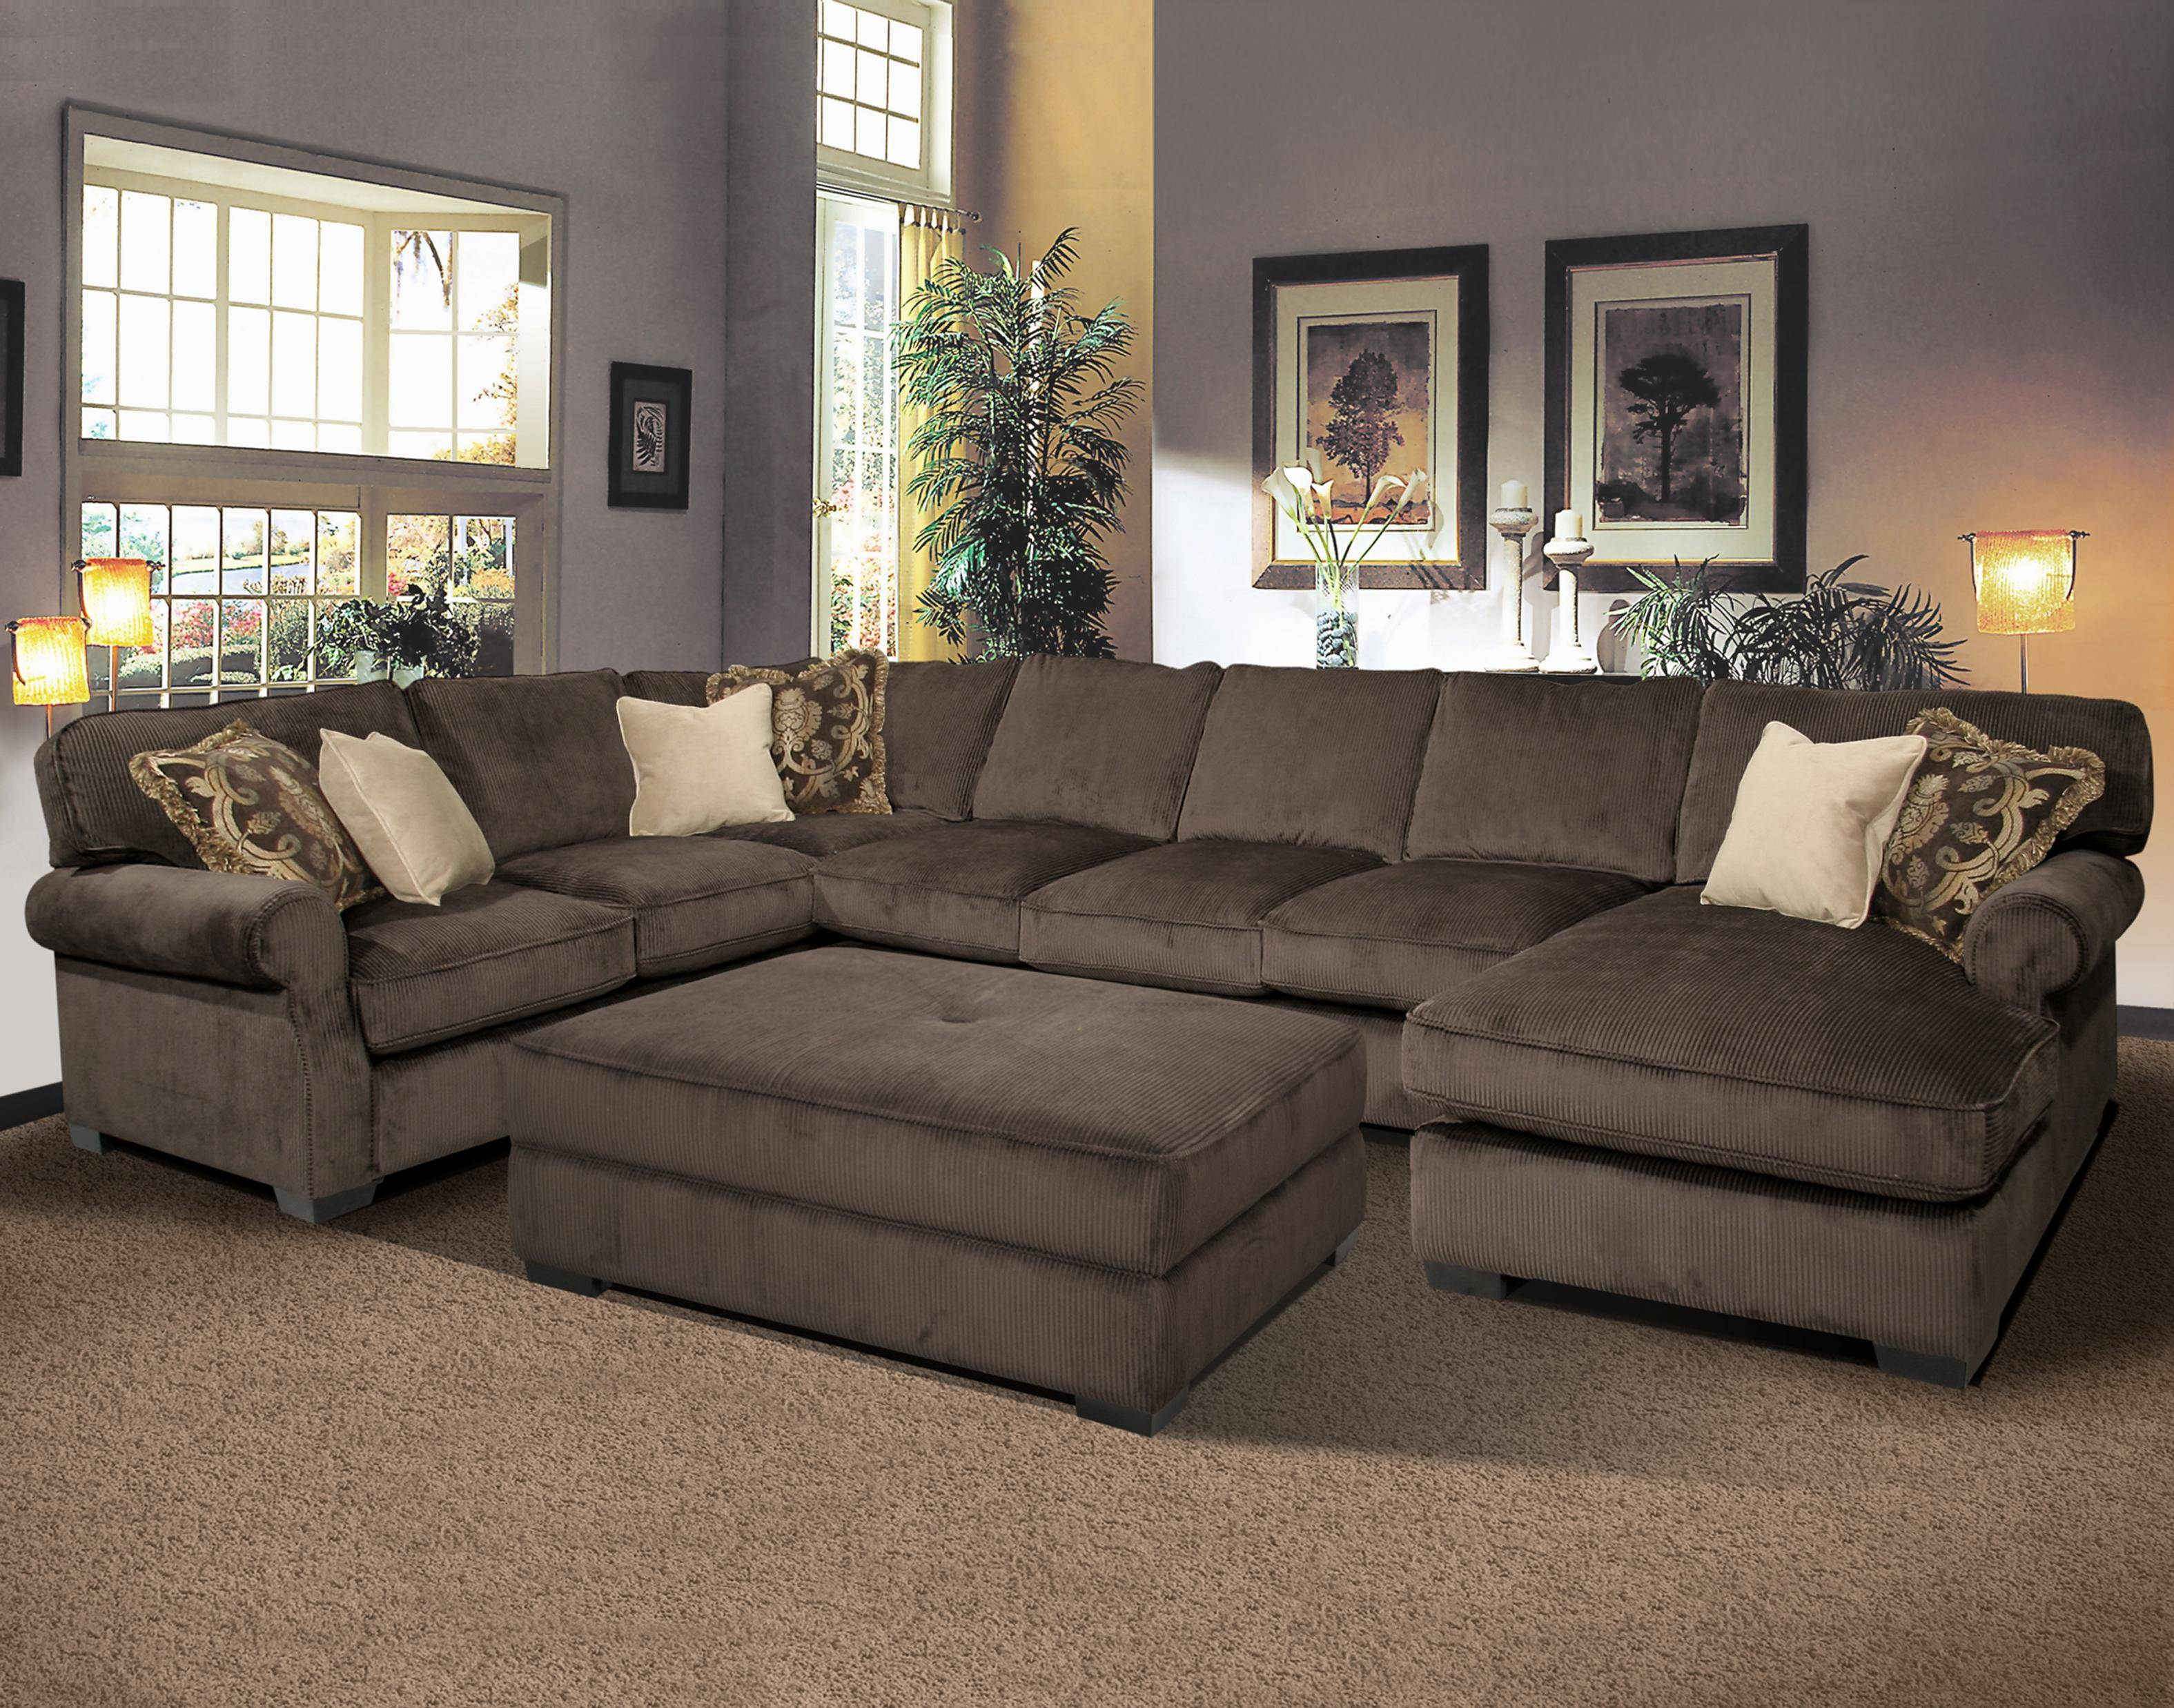 Furniture: Robert Michael Furniture Sectional | Robert Michaels inside Down Filled Sofas And Sectionals (Image 13 of 30)